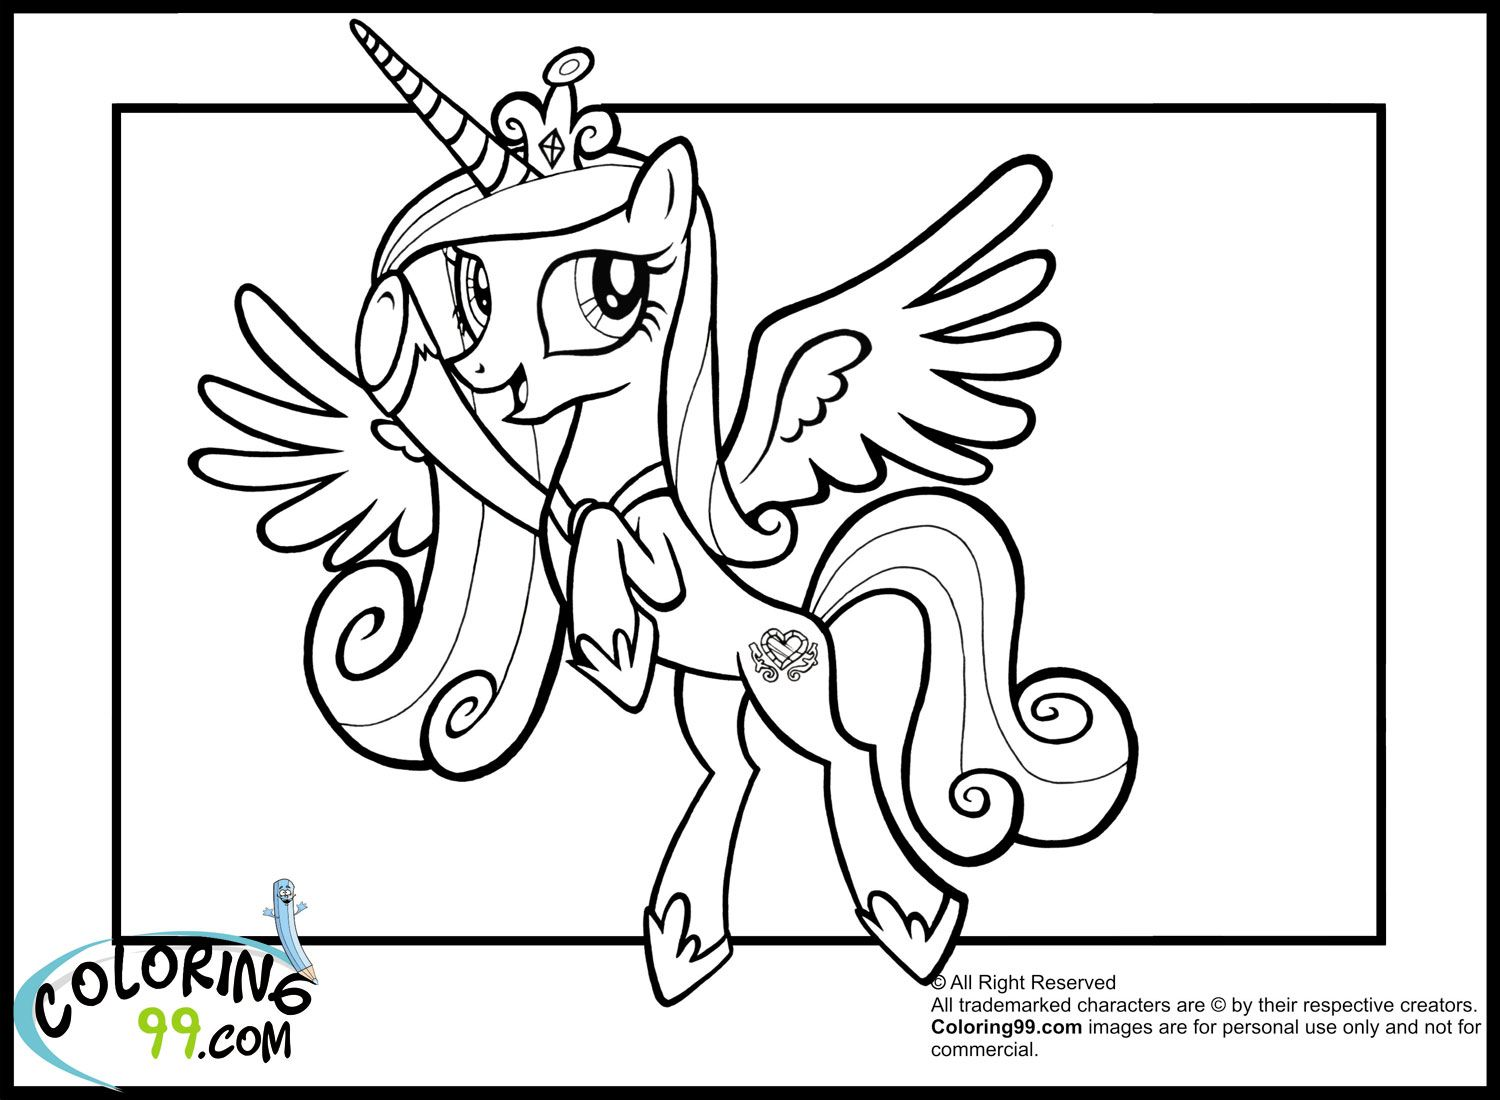 Coloring pages of princess cadence - Princess Cadence Coloring Pages